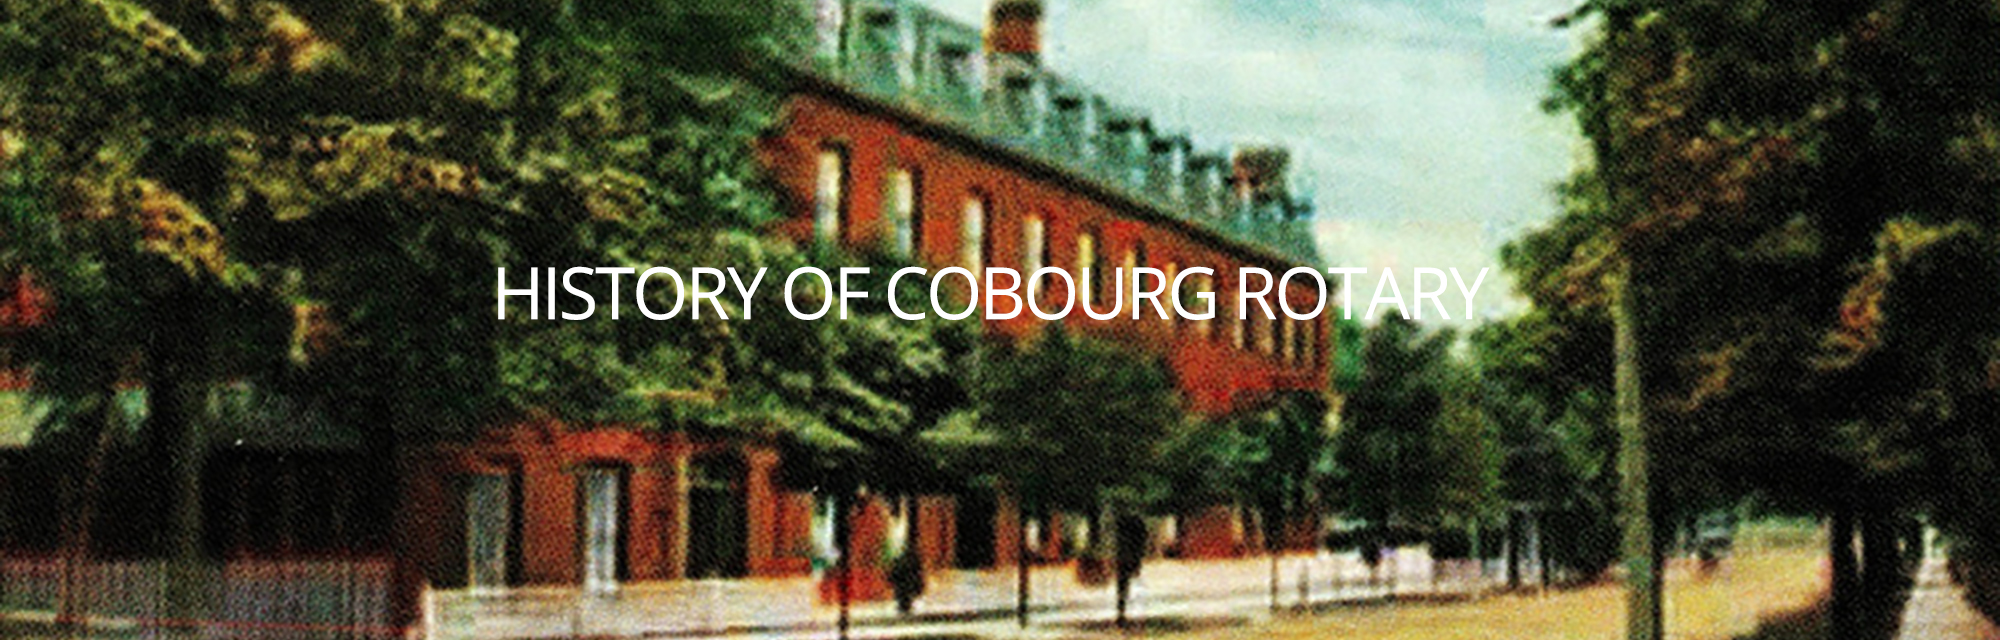 History of Cobourg Rotary